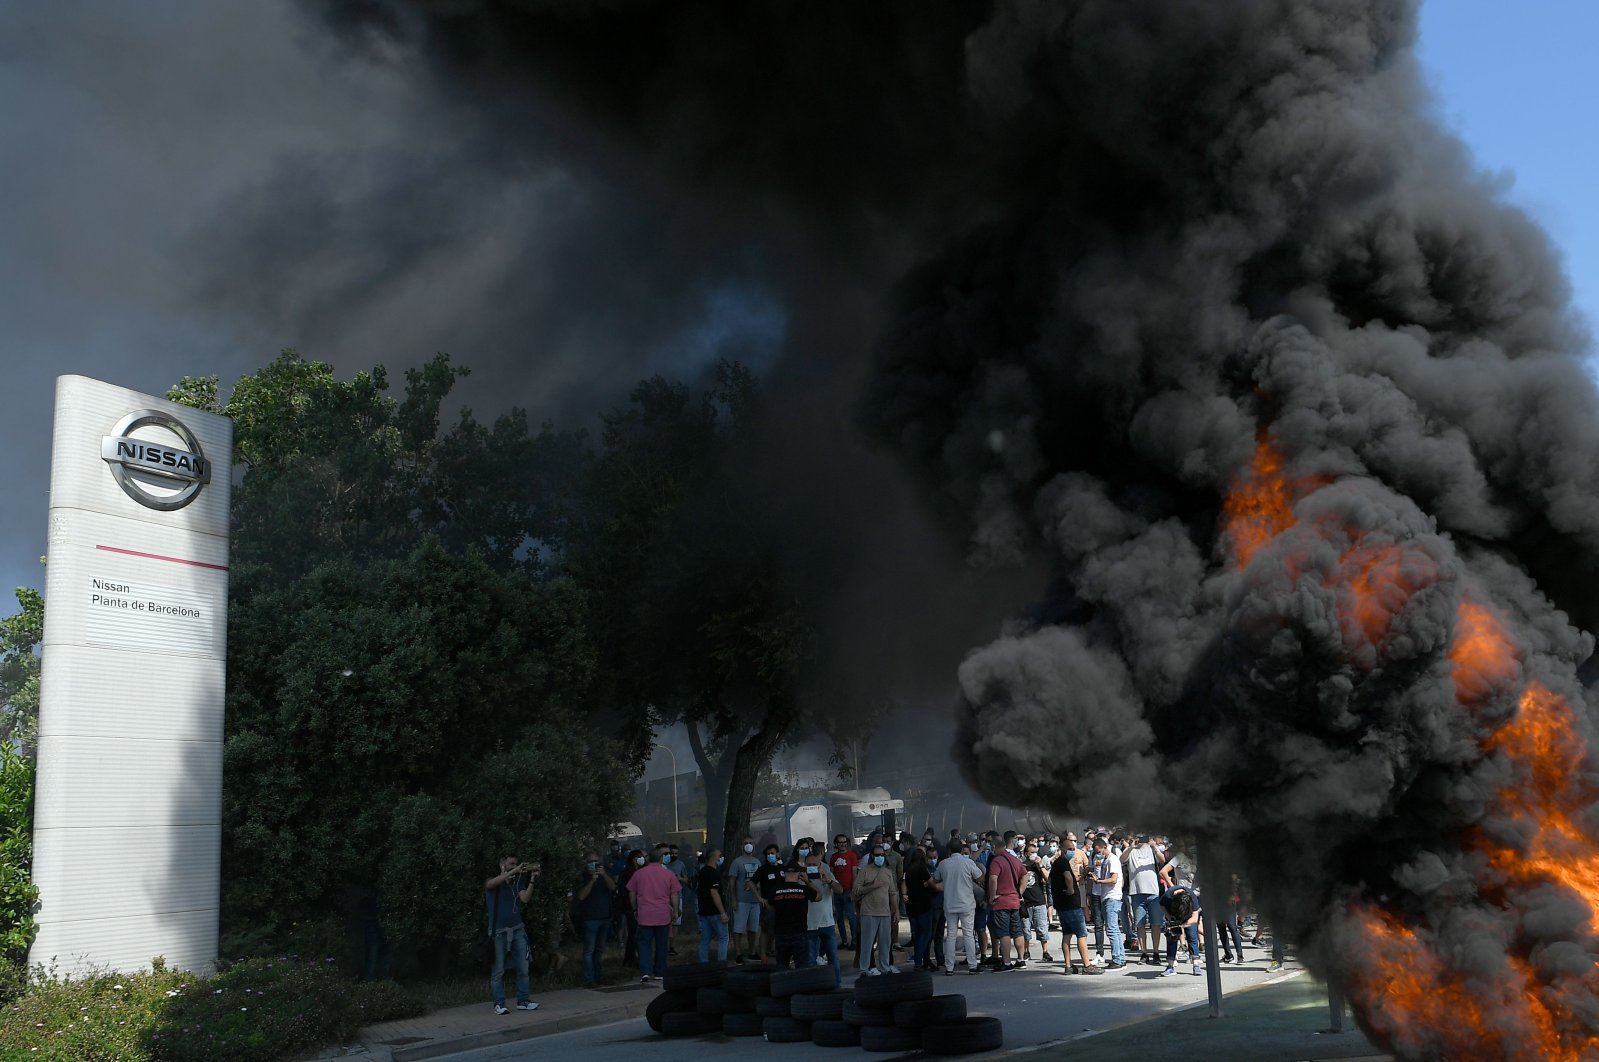 Nissan employees burn tires in front of the Japanese car manufacturer's plant in Barcelona on May 28, 2020. (AFP Photo)